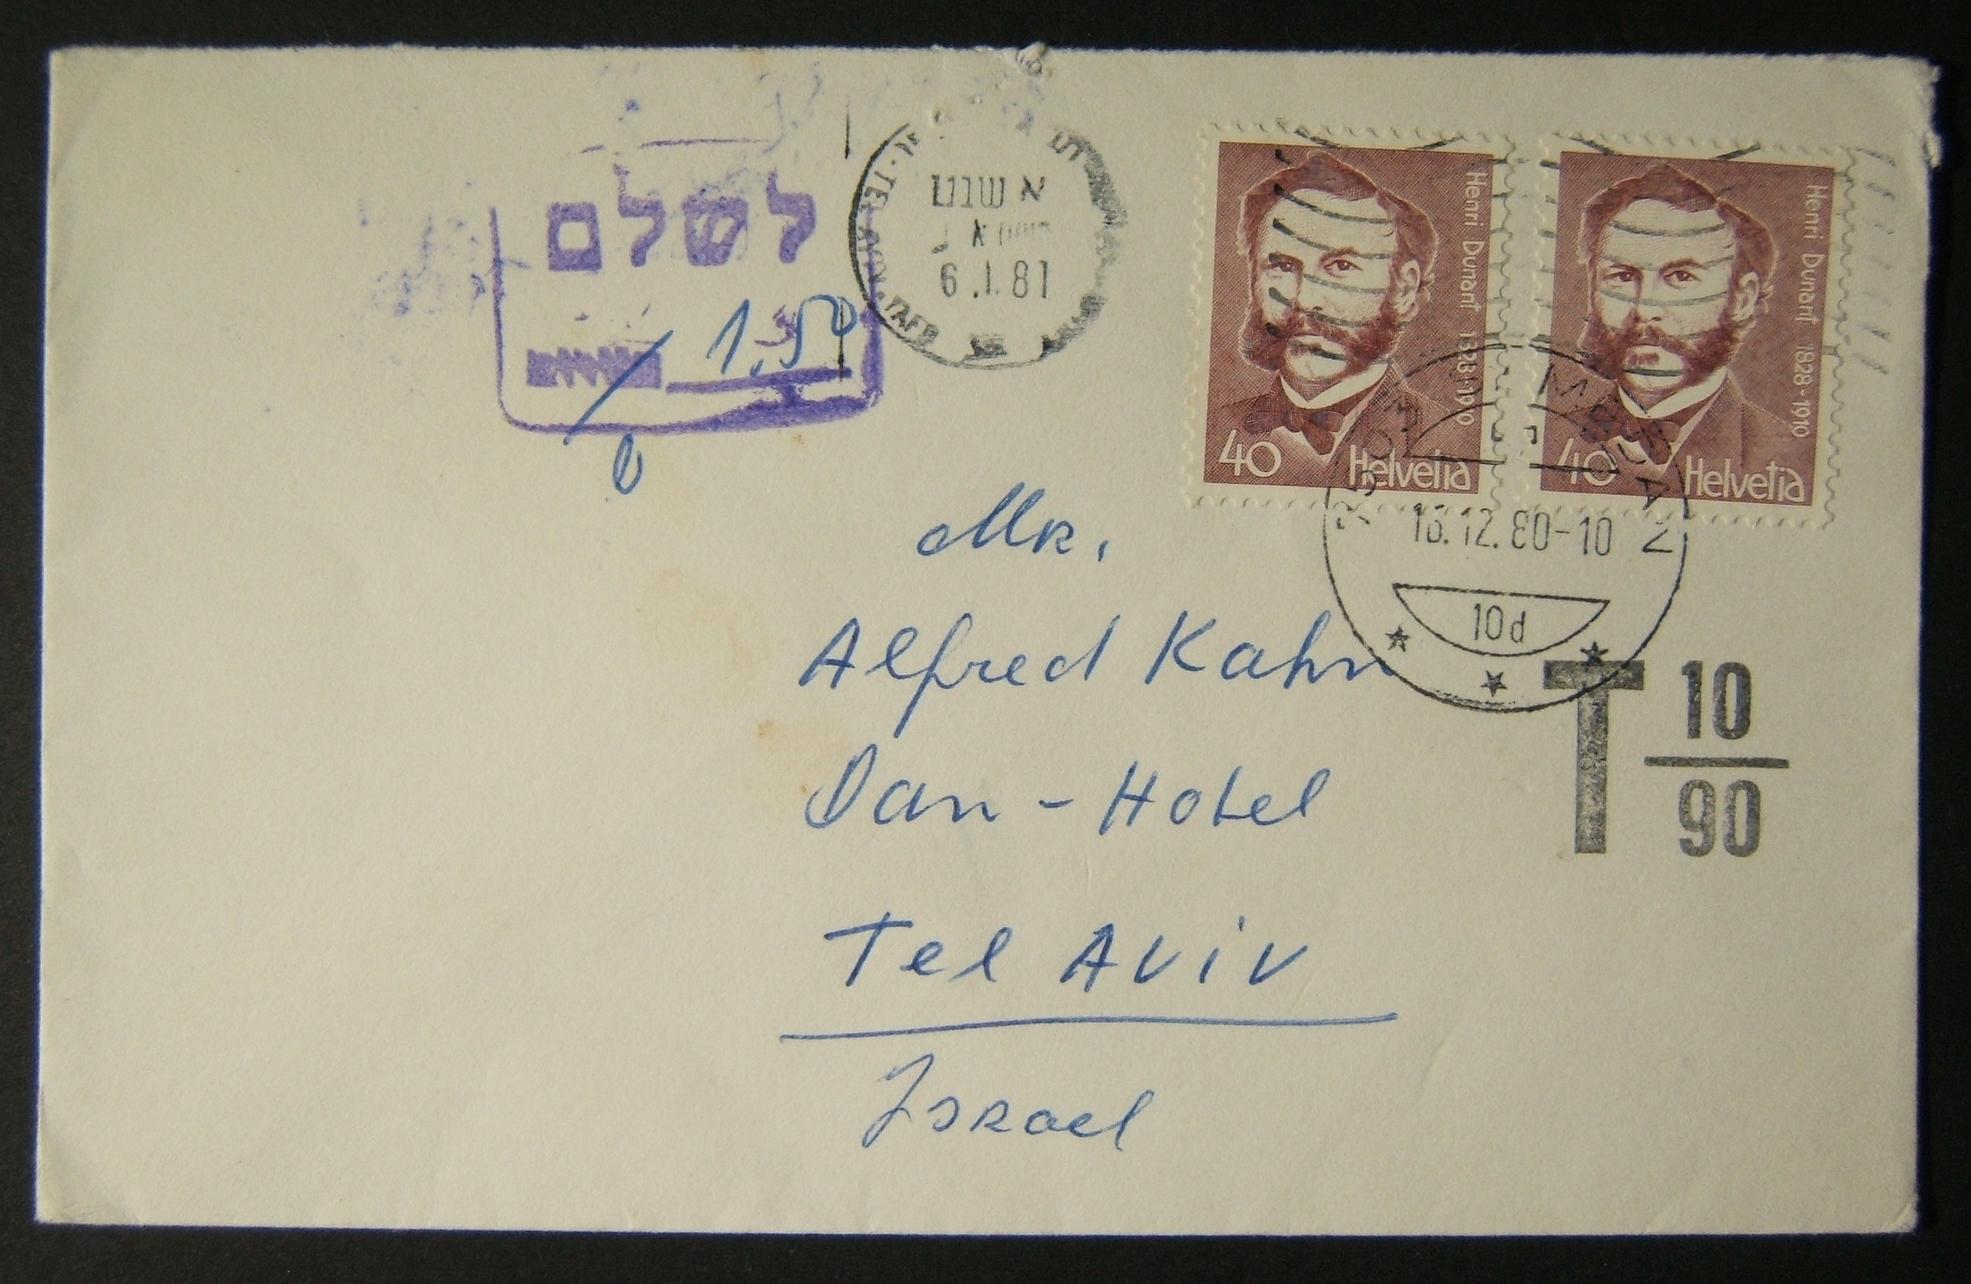 1980 incoming Swiss taxed mail: 16-12-1980 surface mailed cover ex SAMEDAN to TLV underfranked at 80ct; arrived 6-1-81 and taxed in Israel 1.50 Sh, with pre-currency reform cachet